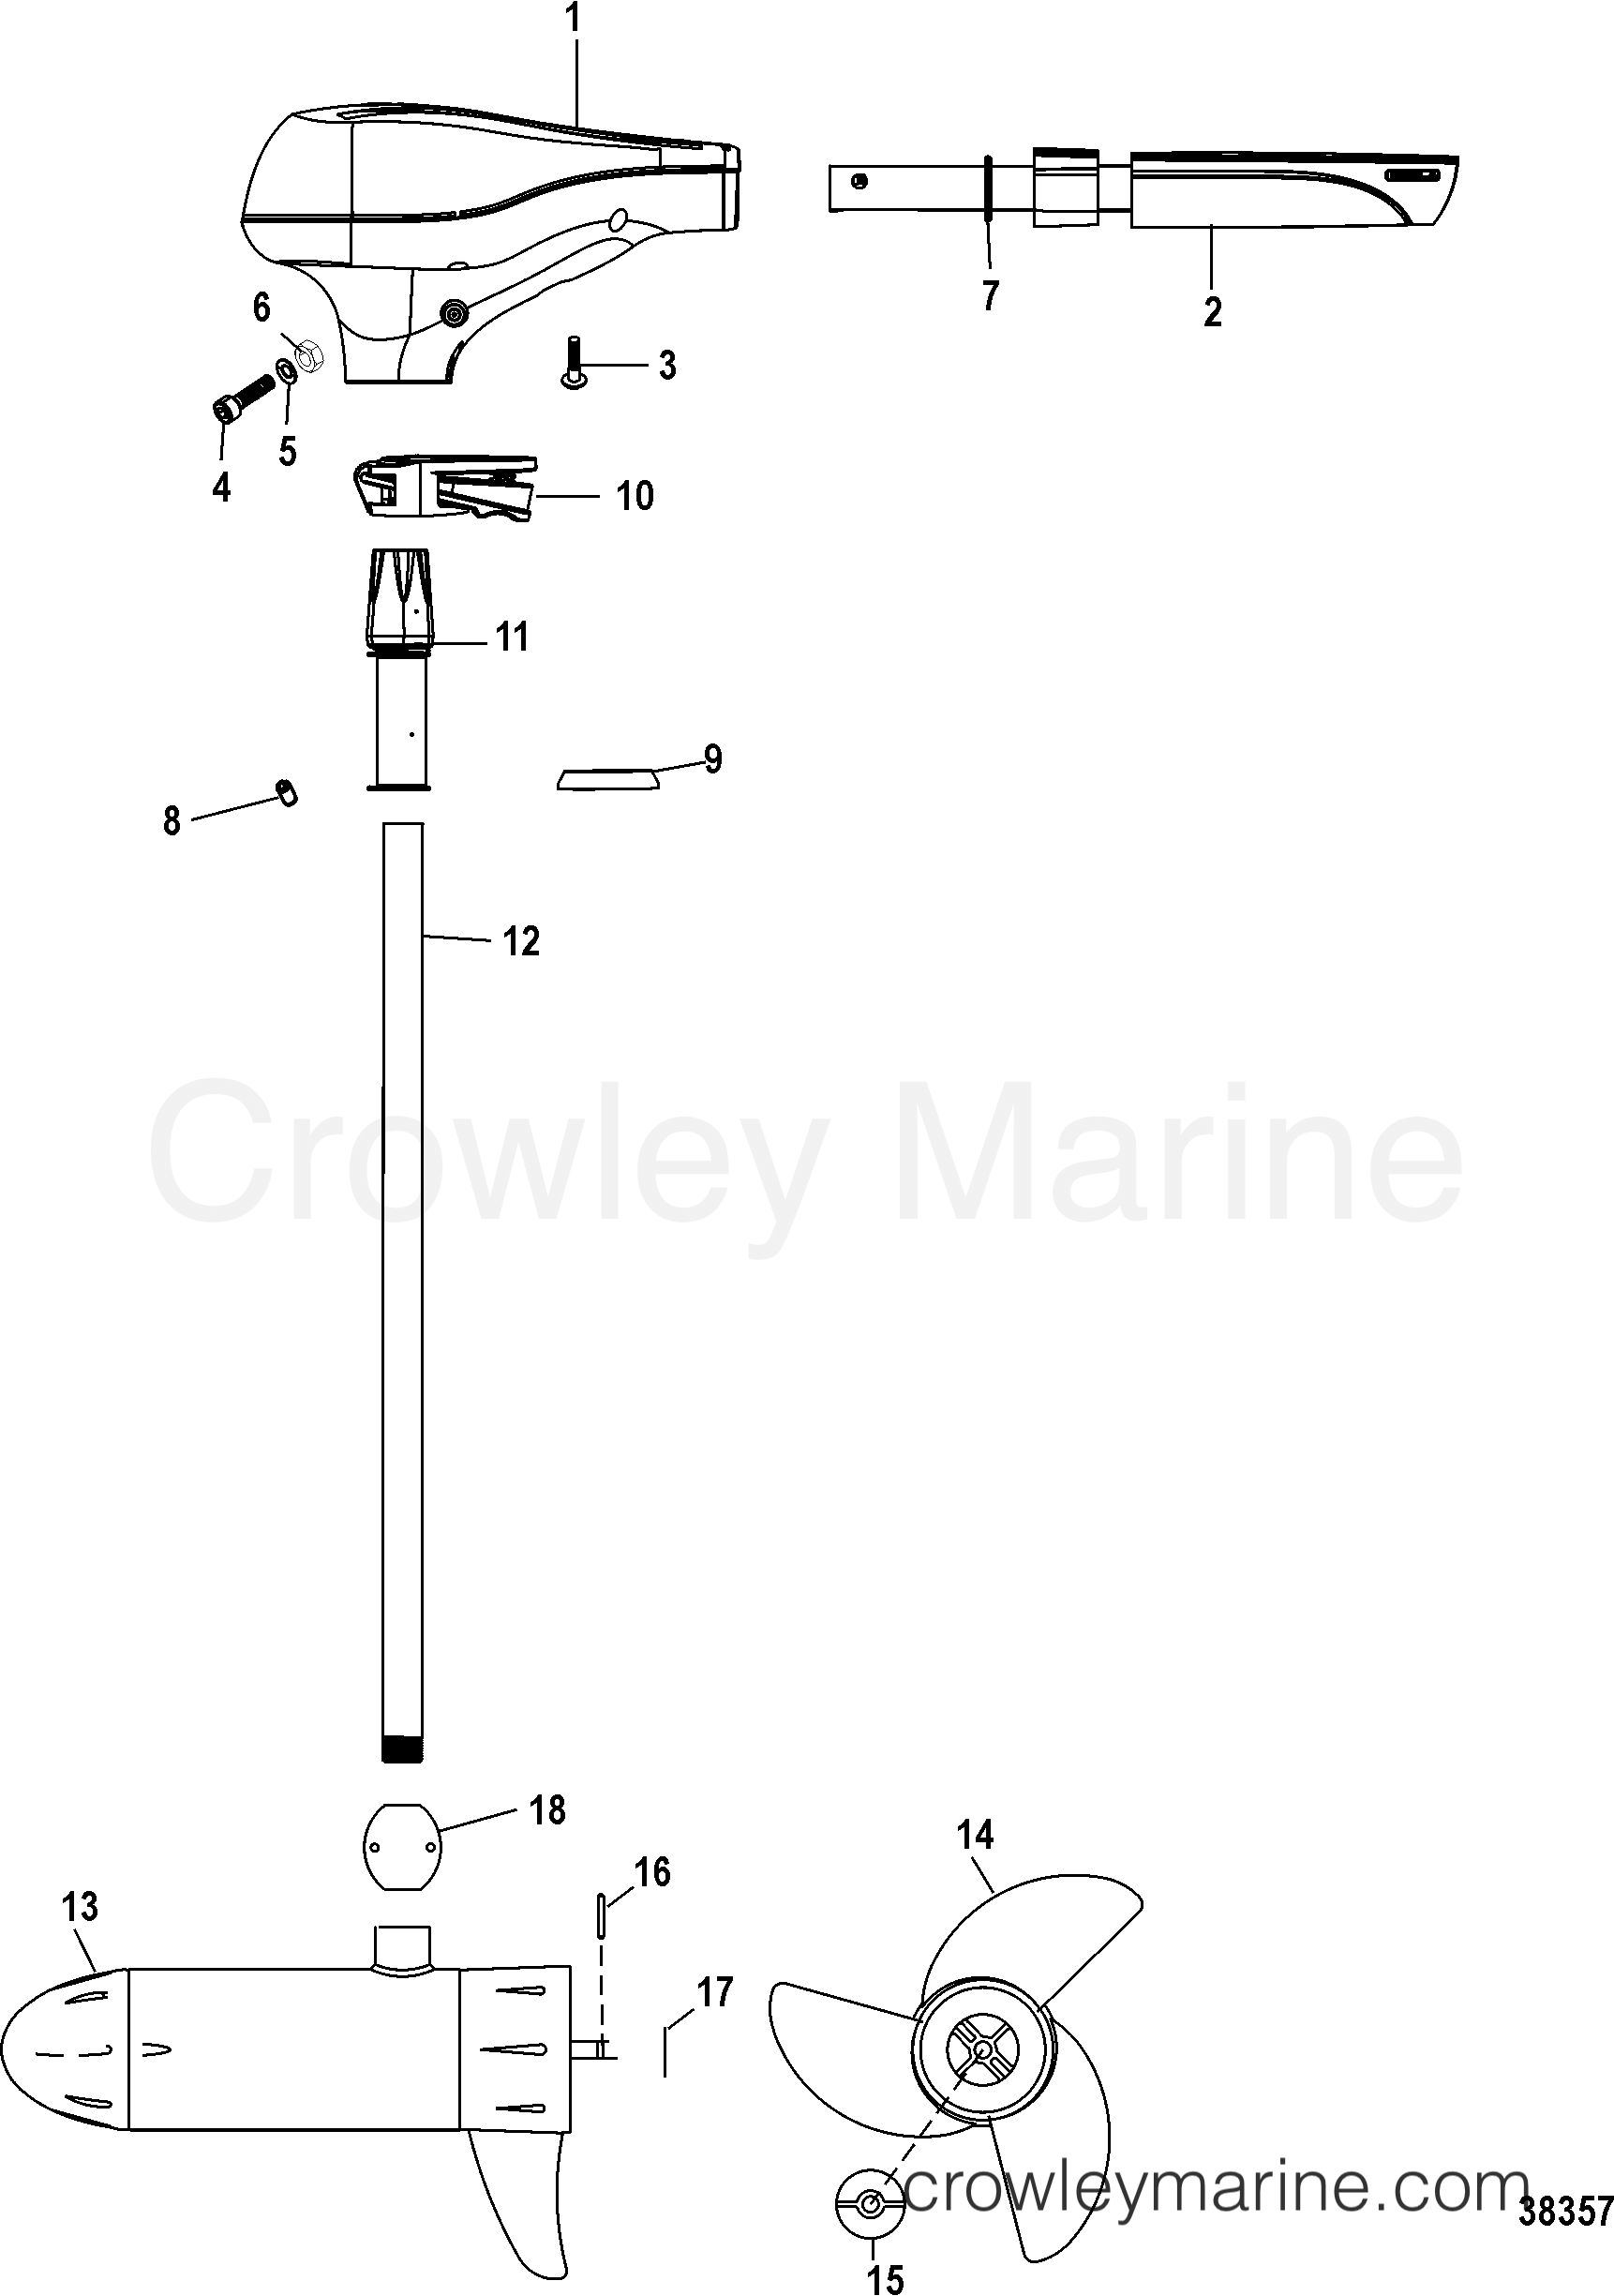 Circuit Breaker For V Trolling Motor Unique Volt Wiring Diagram Wiring Wiring Diagrams Instructions Of Circuit Breaker For V Trolling Motor in addition Af Ed B D C Bd F C D E A C R moreover E Ea B Dfb E A A A E further Boat Wiring Diagram Step Notes Min likewise Wied Wiring X Hei   Wid. on 12 24 trolling motor diagram